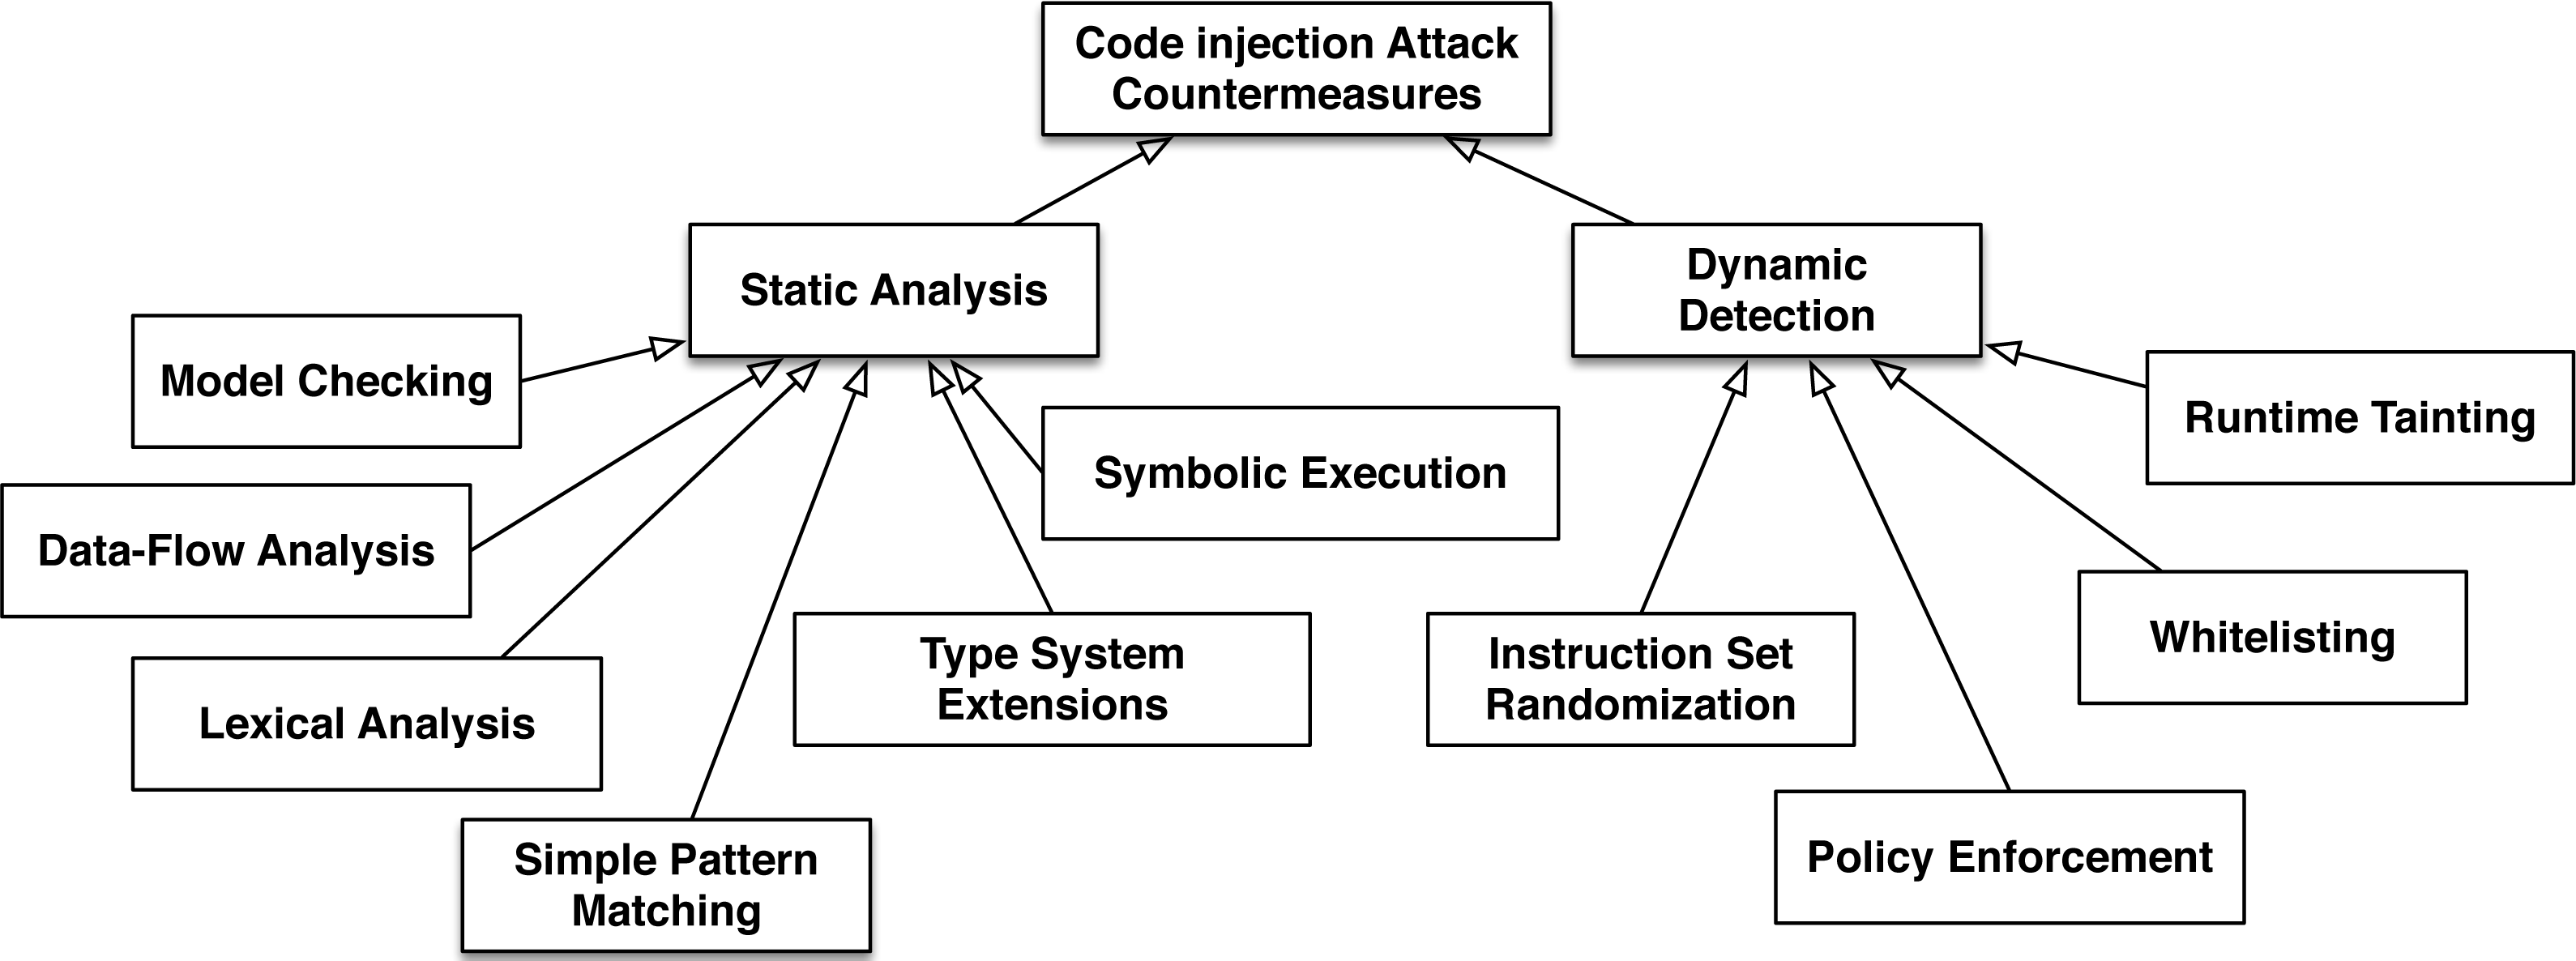 Fatal injection: a survey of modern code injection attack